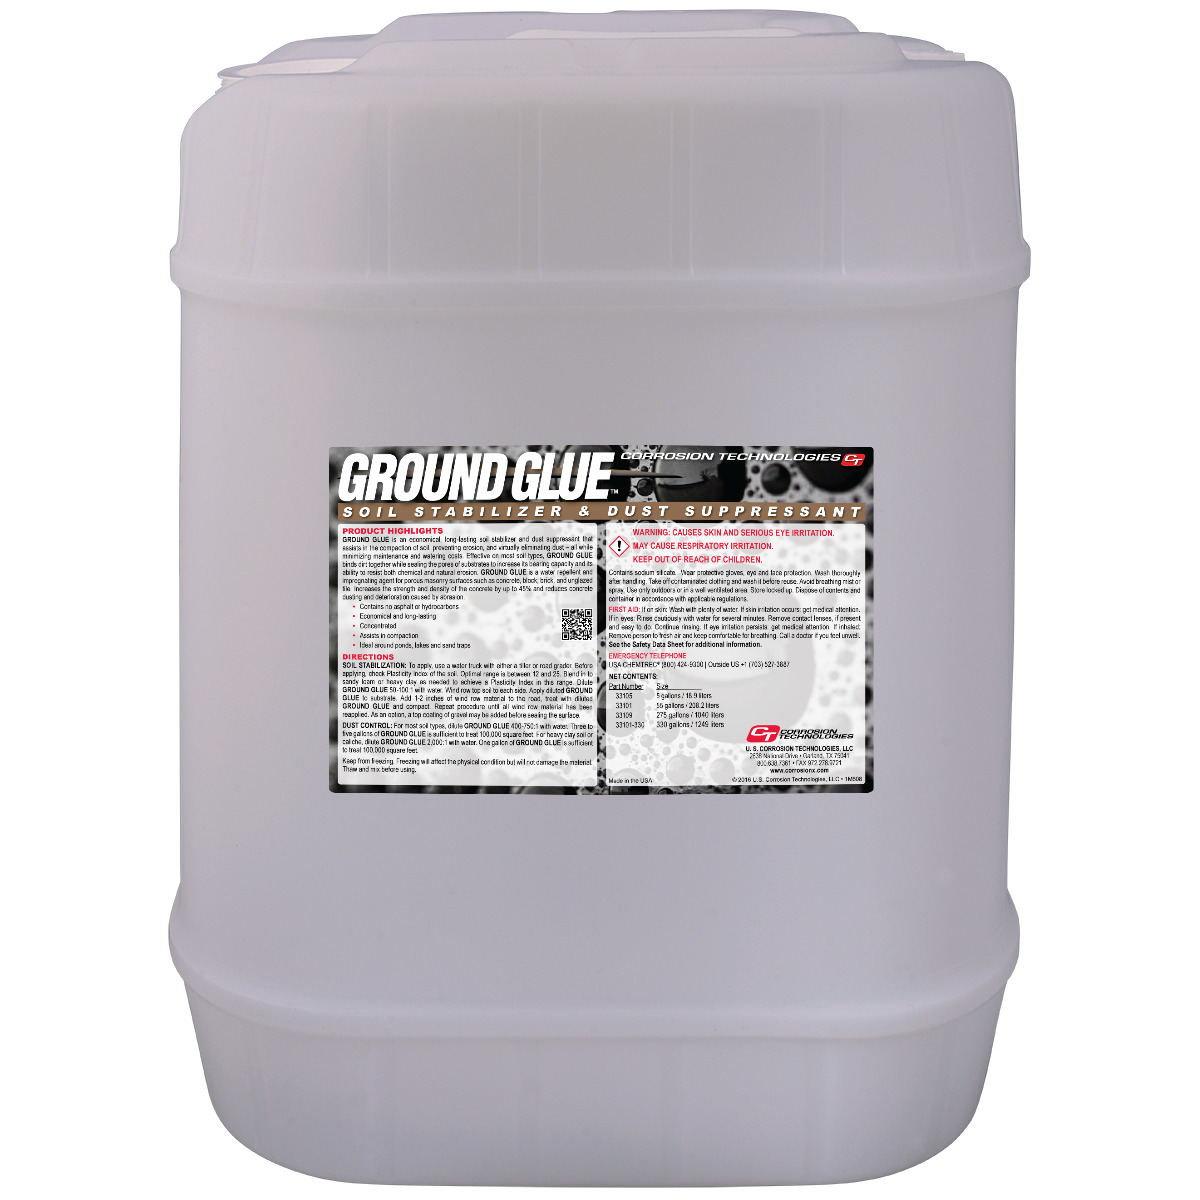 Ground Glue Soil Stabilizer